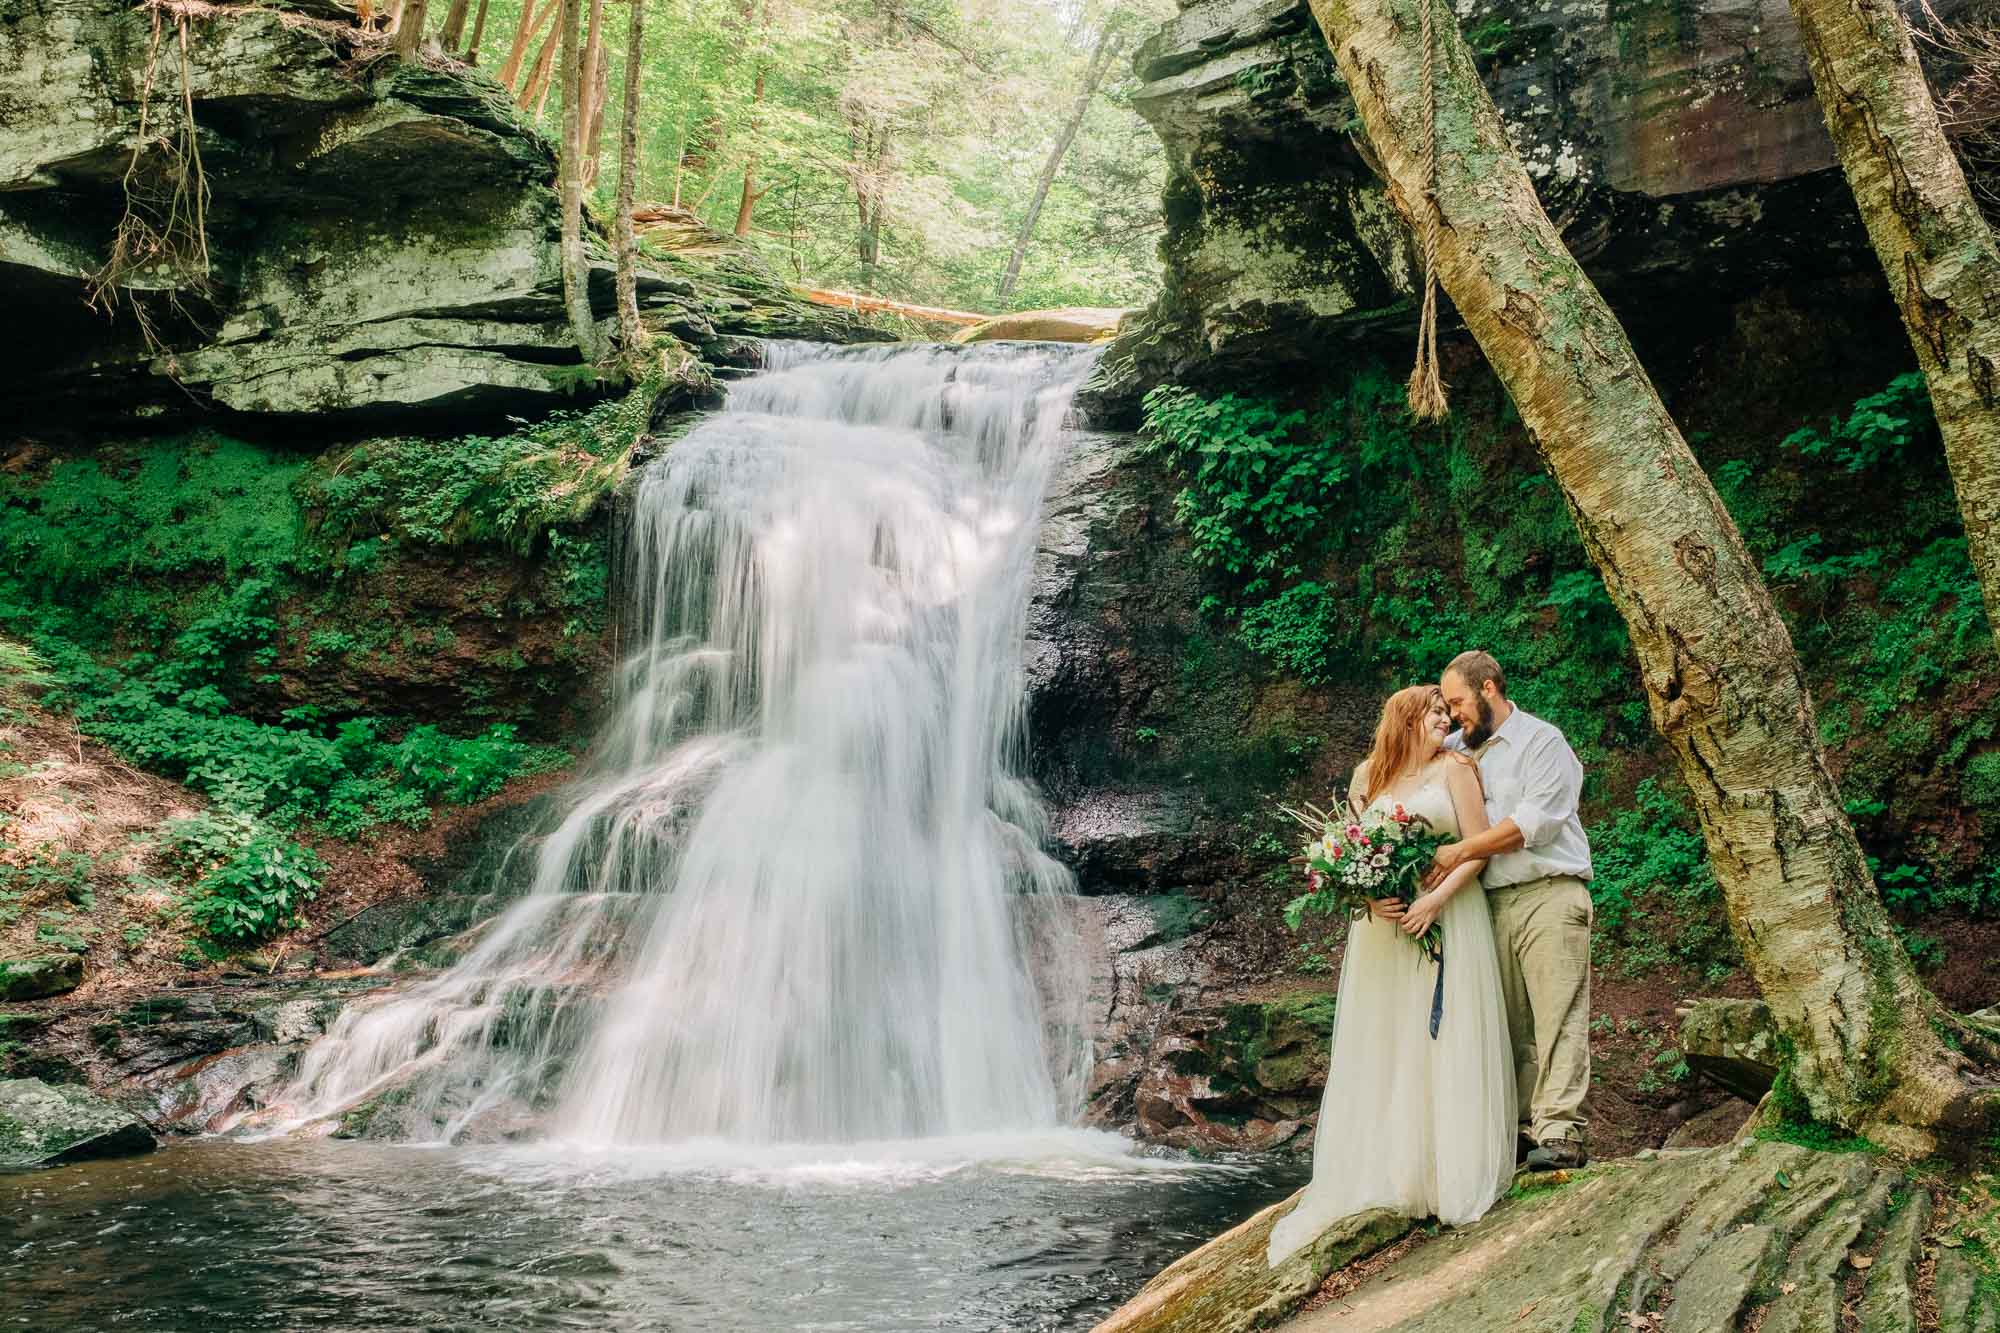 Ricketts-glen-pennsylvania-waterfall-elopement-2925.jpg